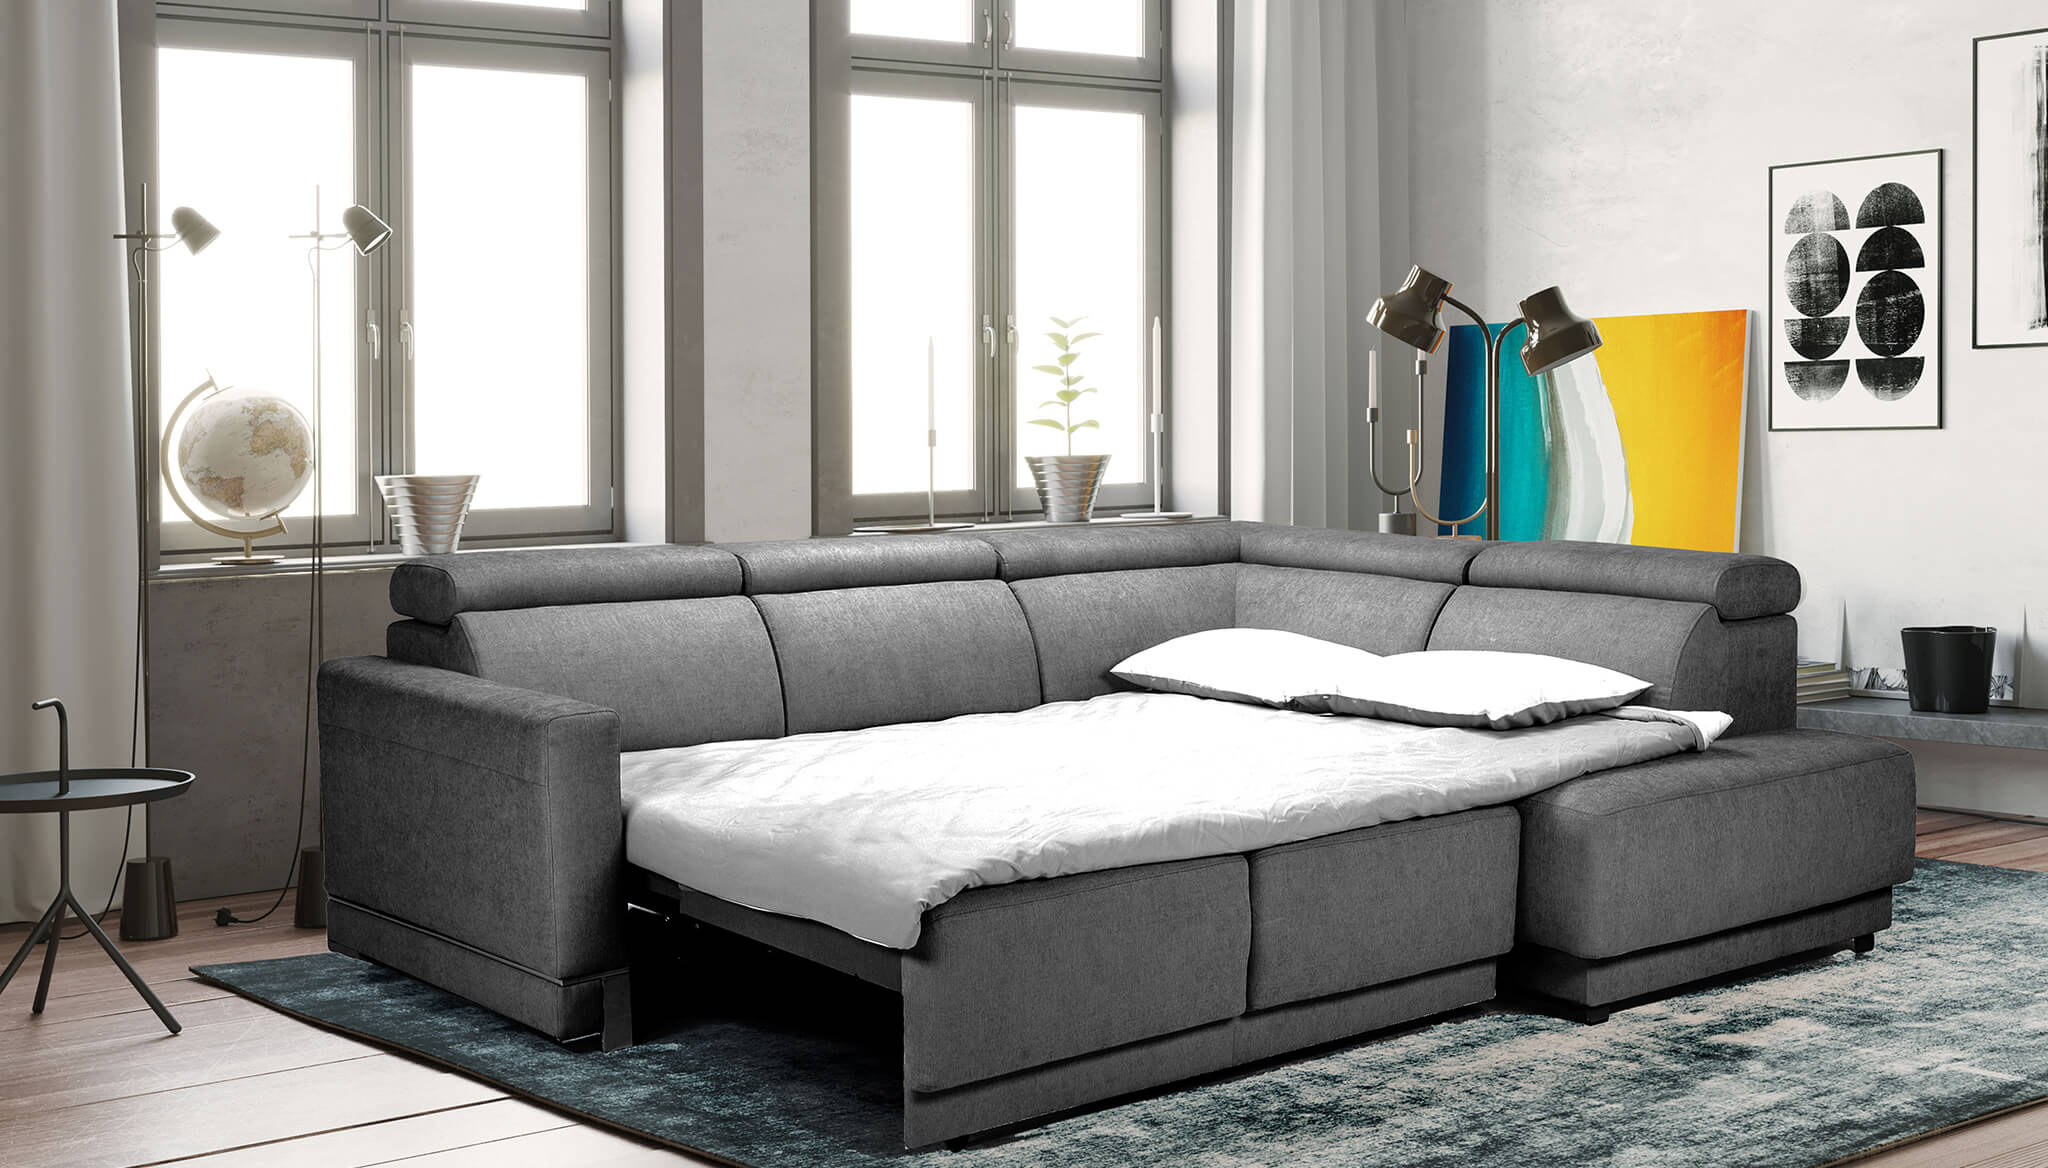 Marburg Sectional Sofa Bed with Storage   Nordholtz Furniture